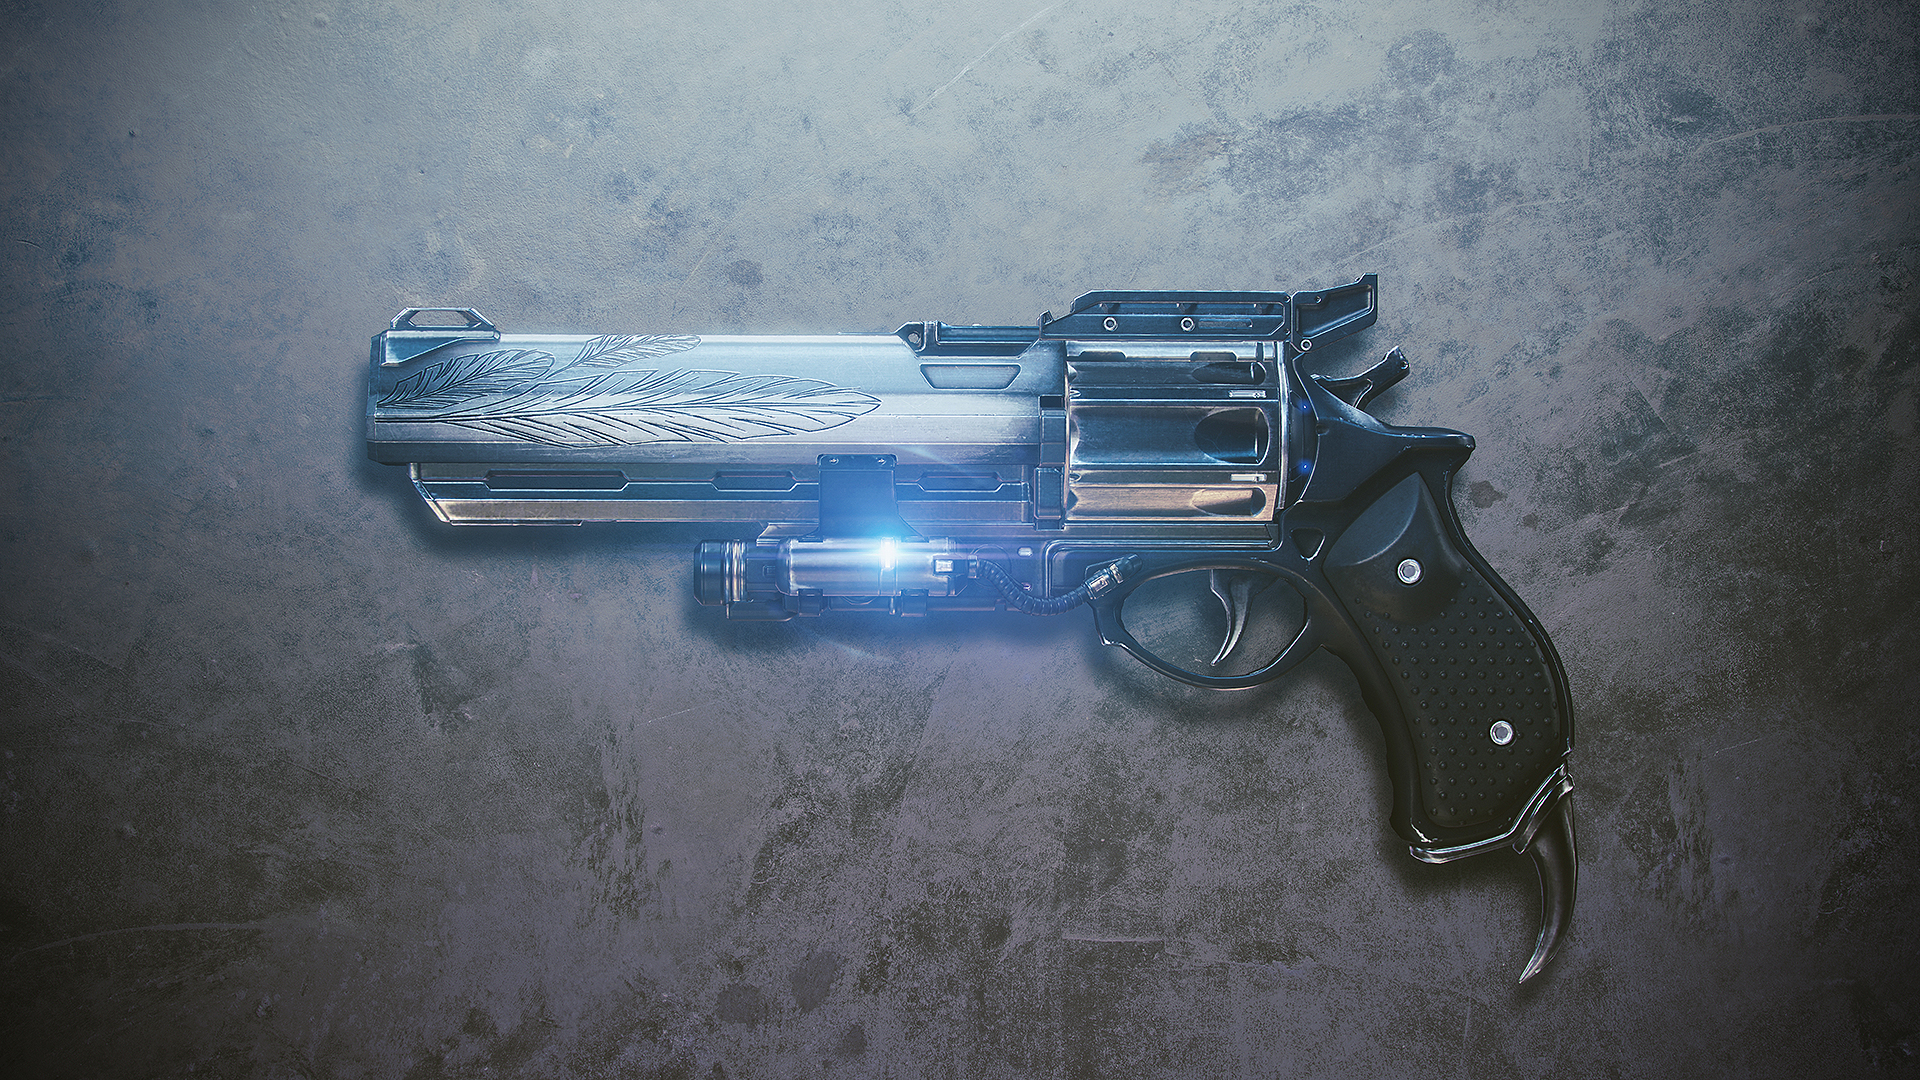 Next Gen, Companion App, Hawkmoon, and Prophecy